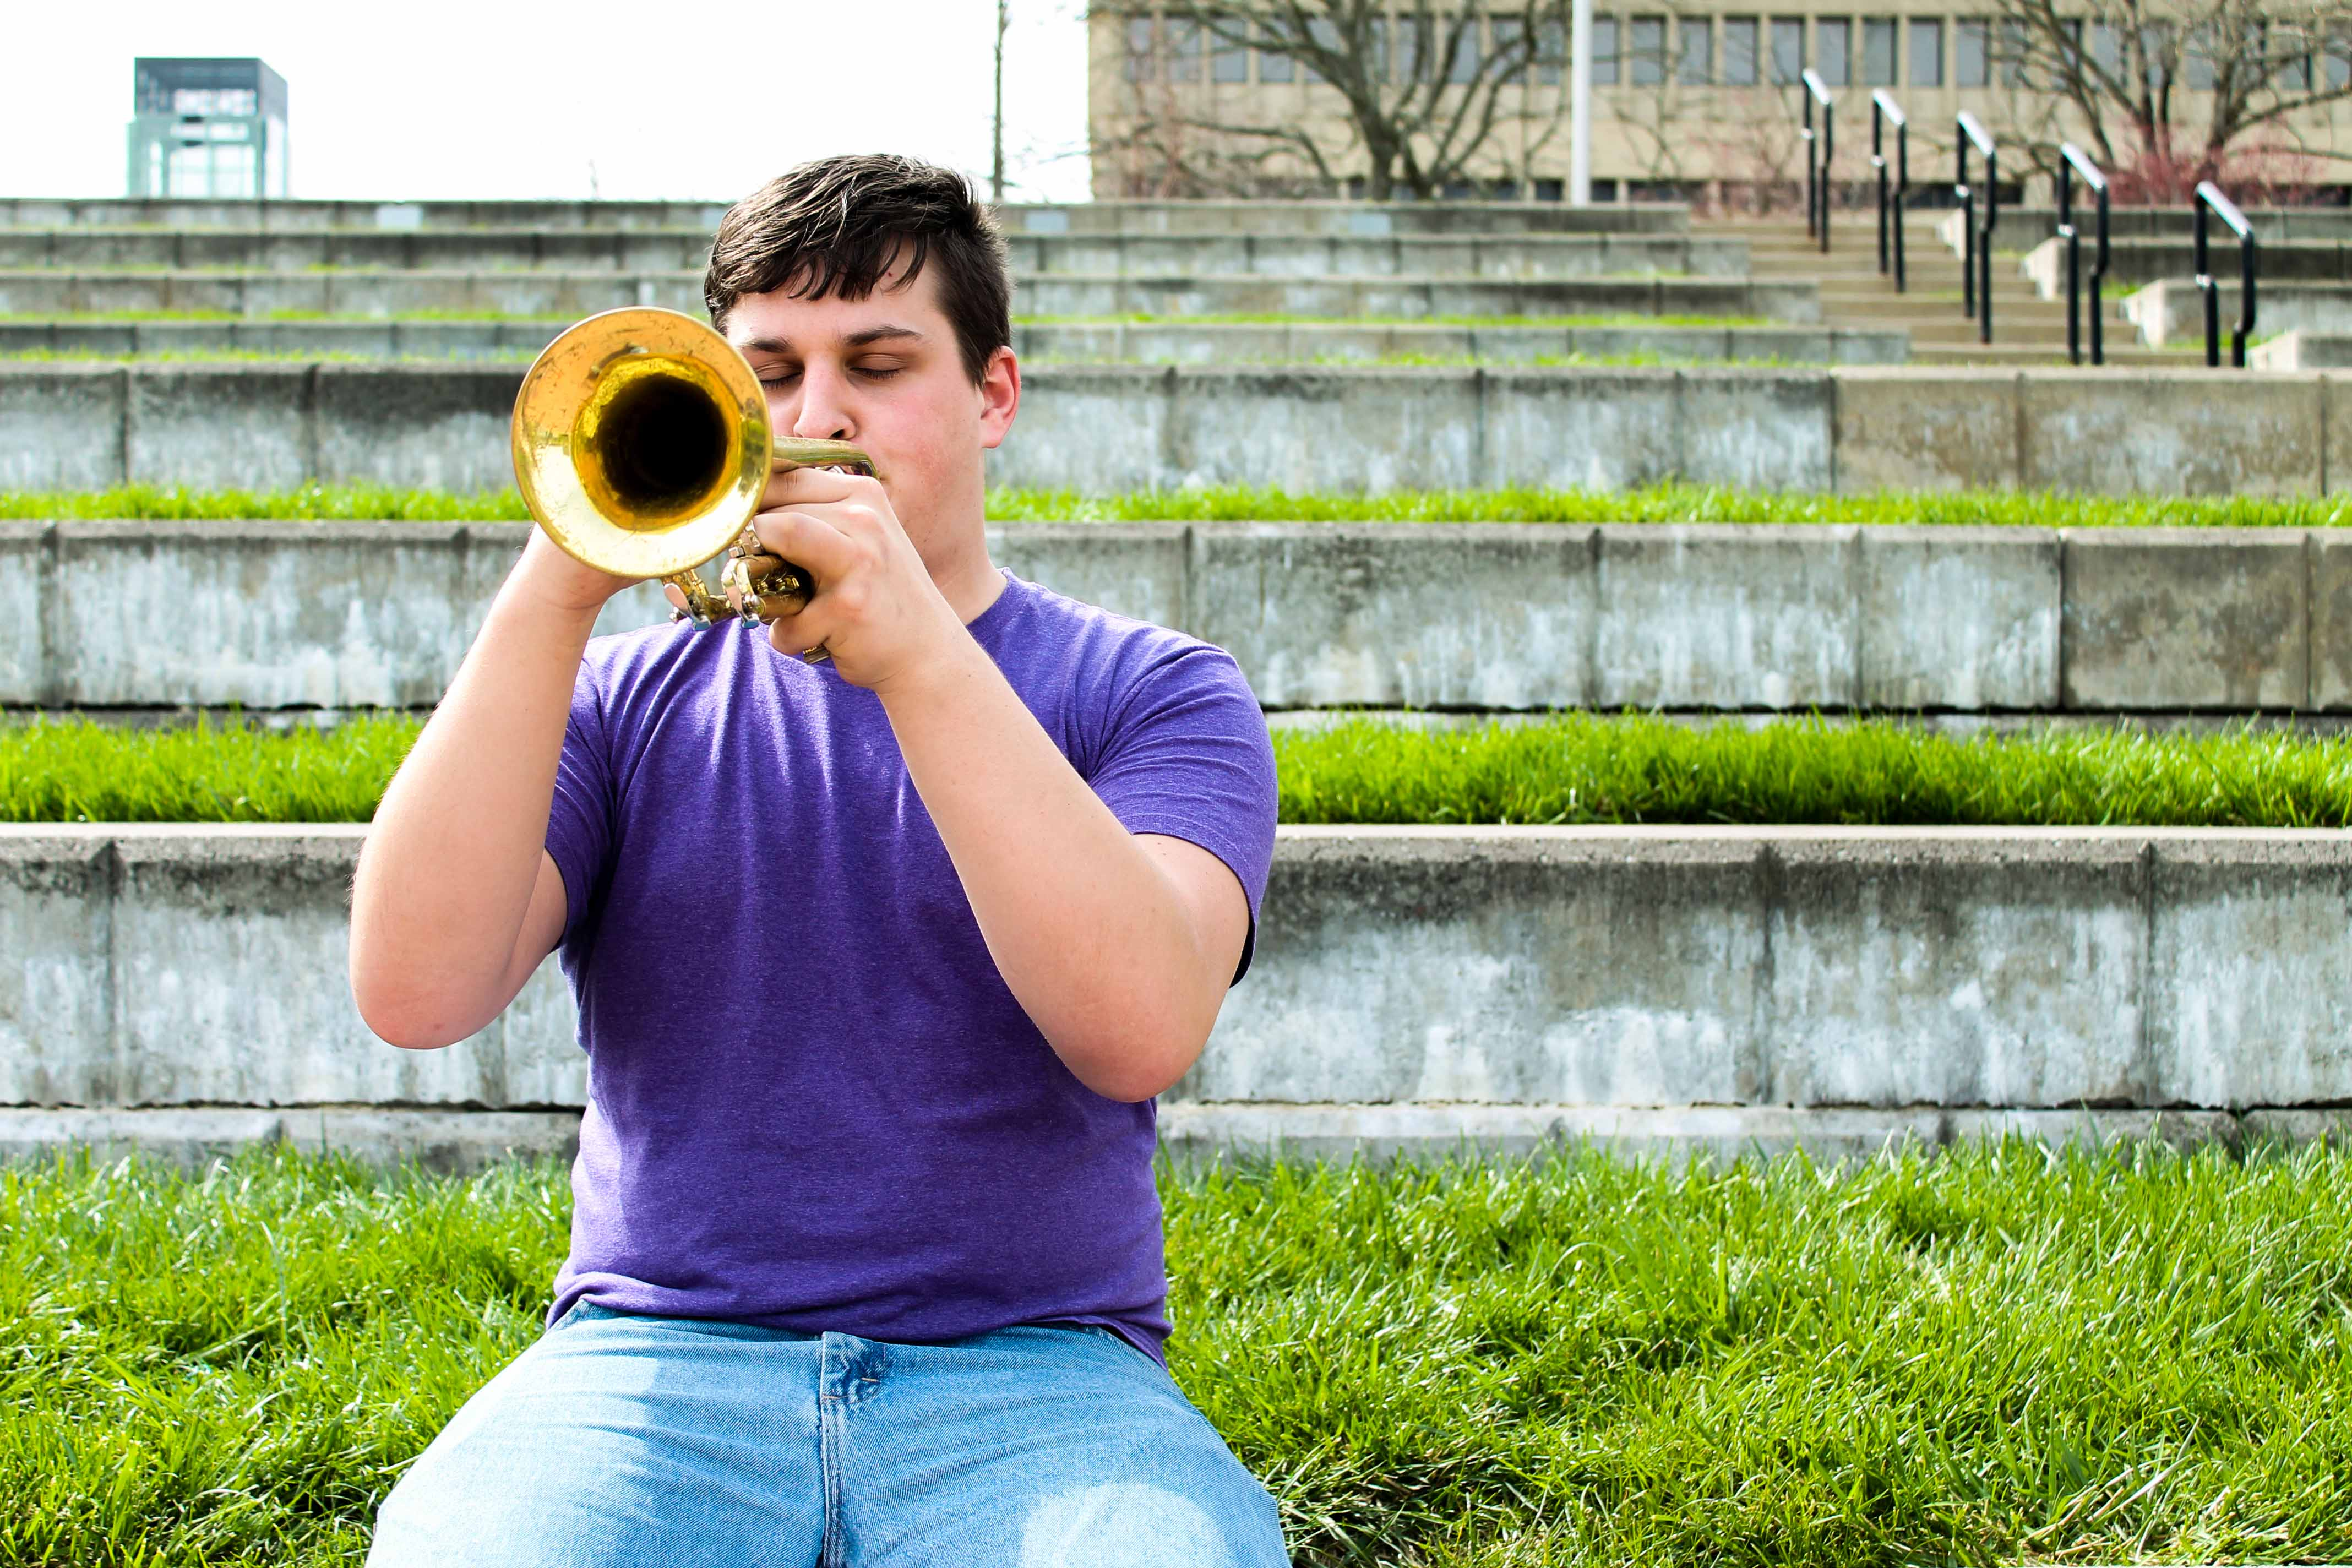 It took Michael Foley around two to three days to play small sections of songs on the trumpet. After about a week he could play about half a song.